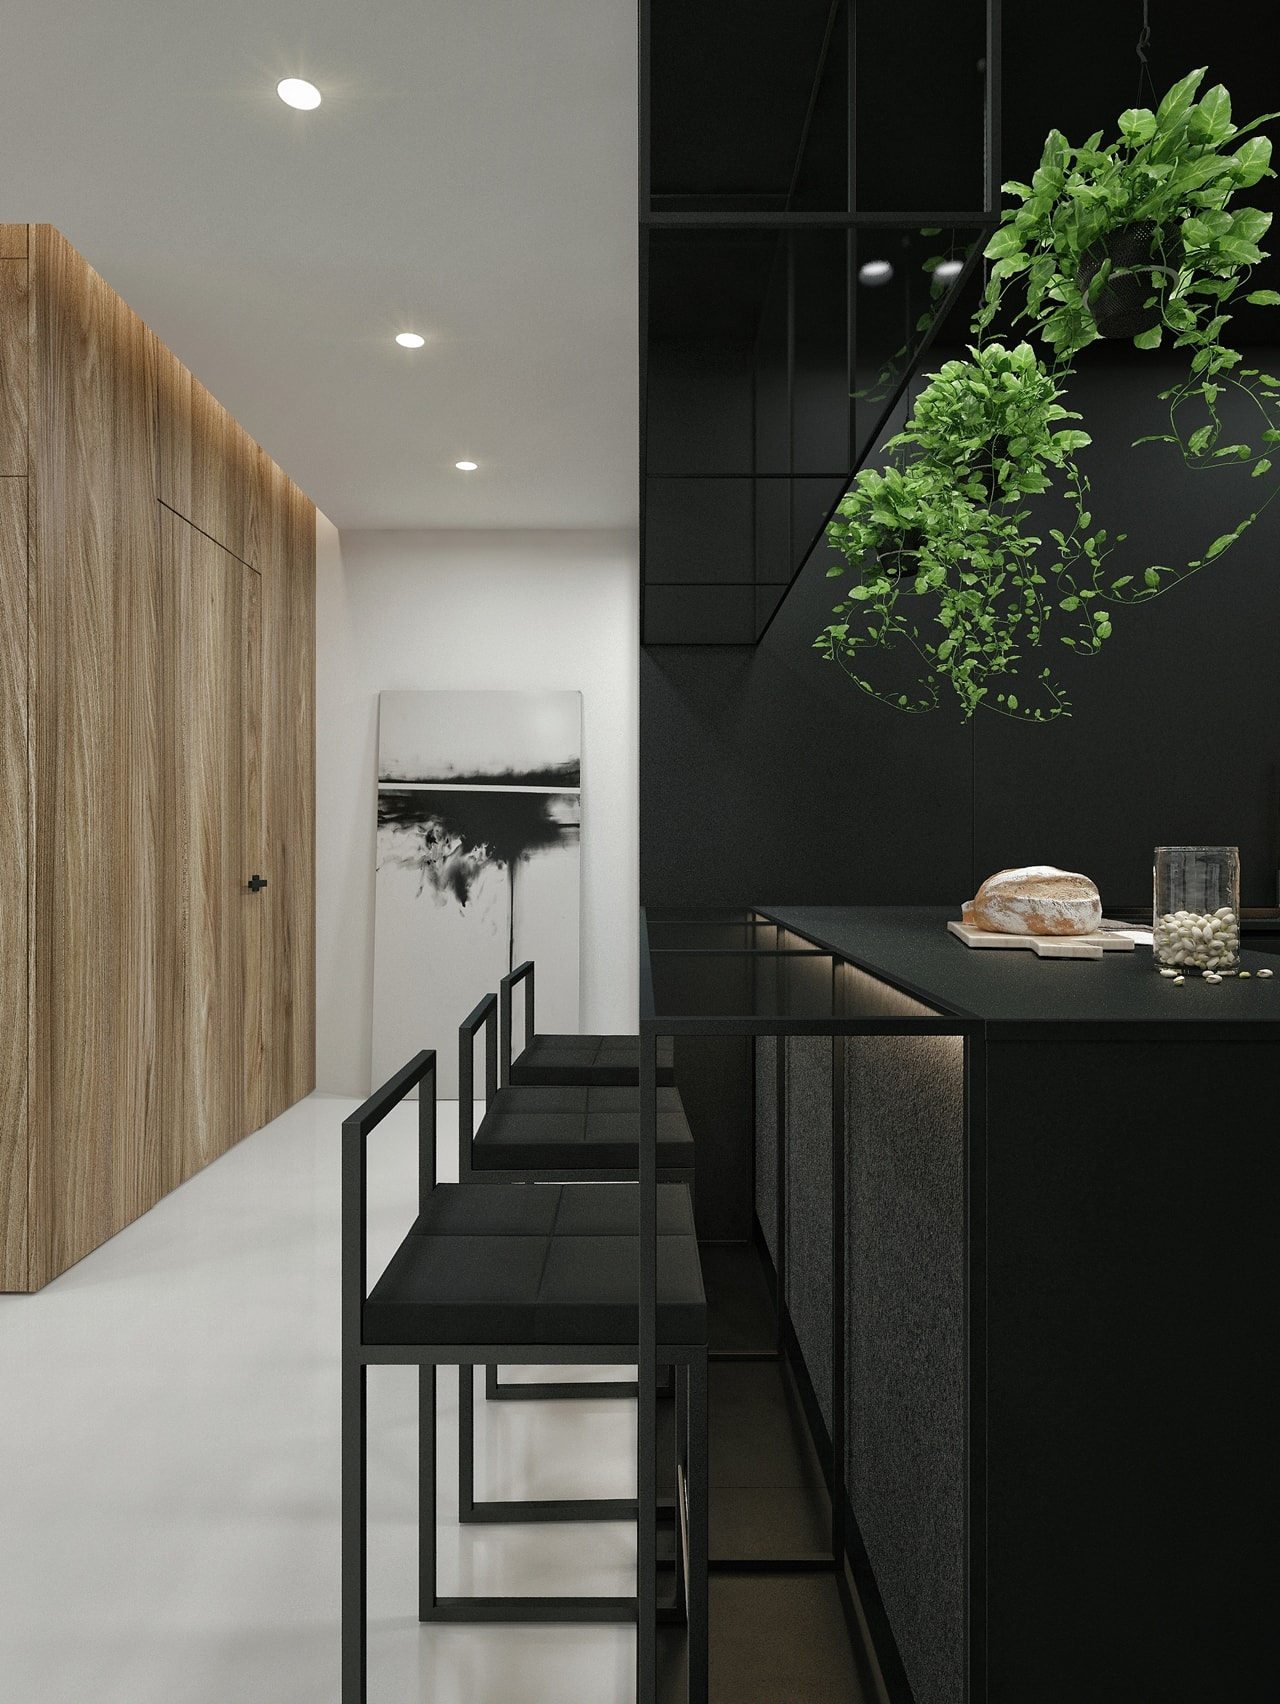 Black and white kitchen design in apartment by ID White